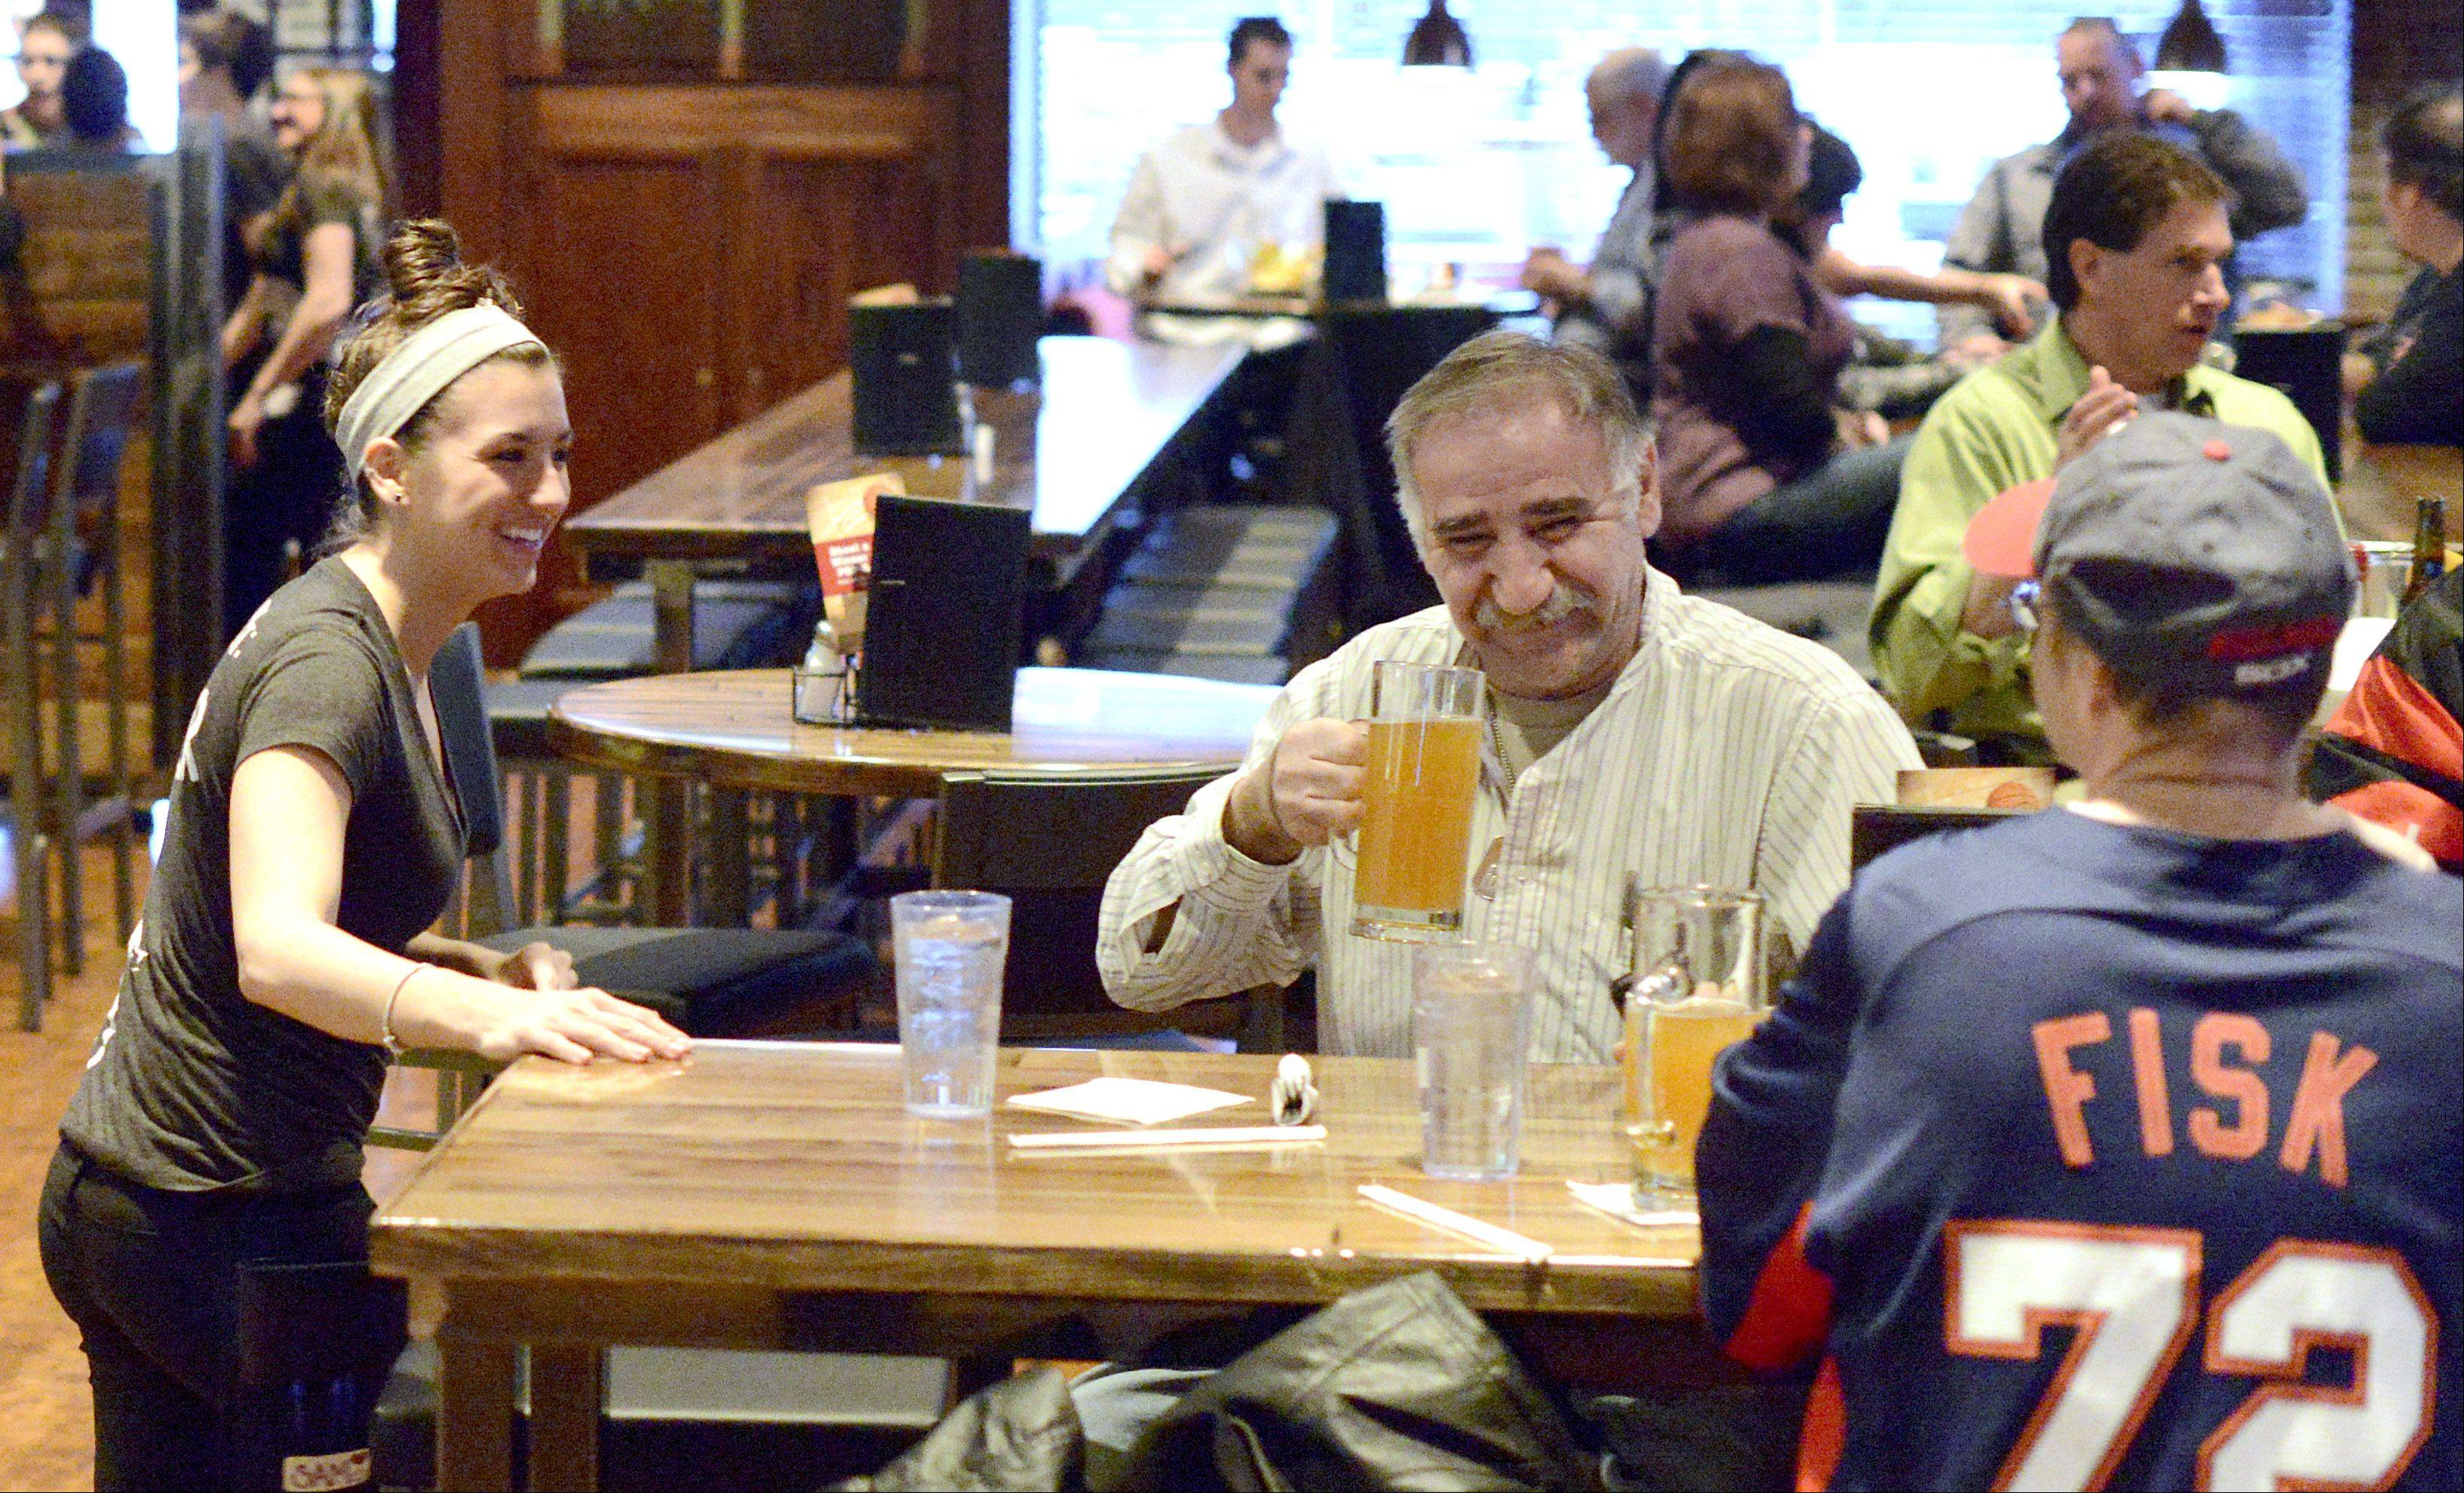 Patrons gather at long tables to drink beer and catch a game at Fox & Hound Sports Tavern in Arlington Heights.